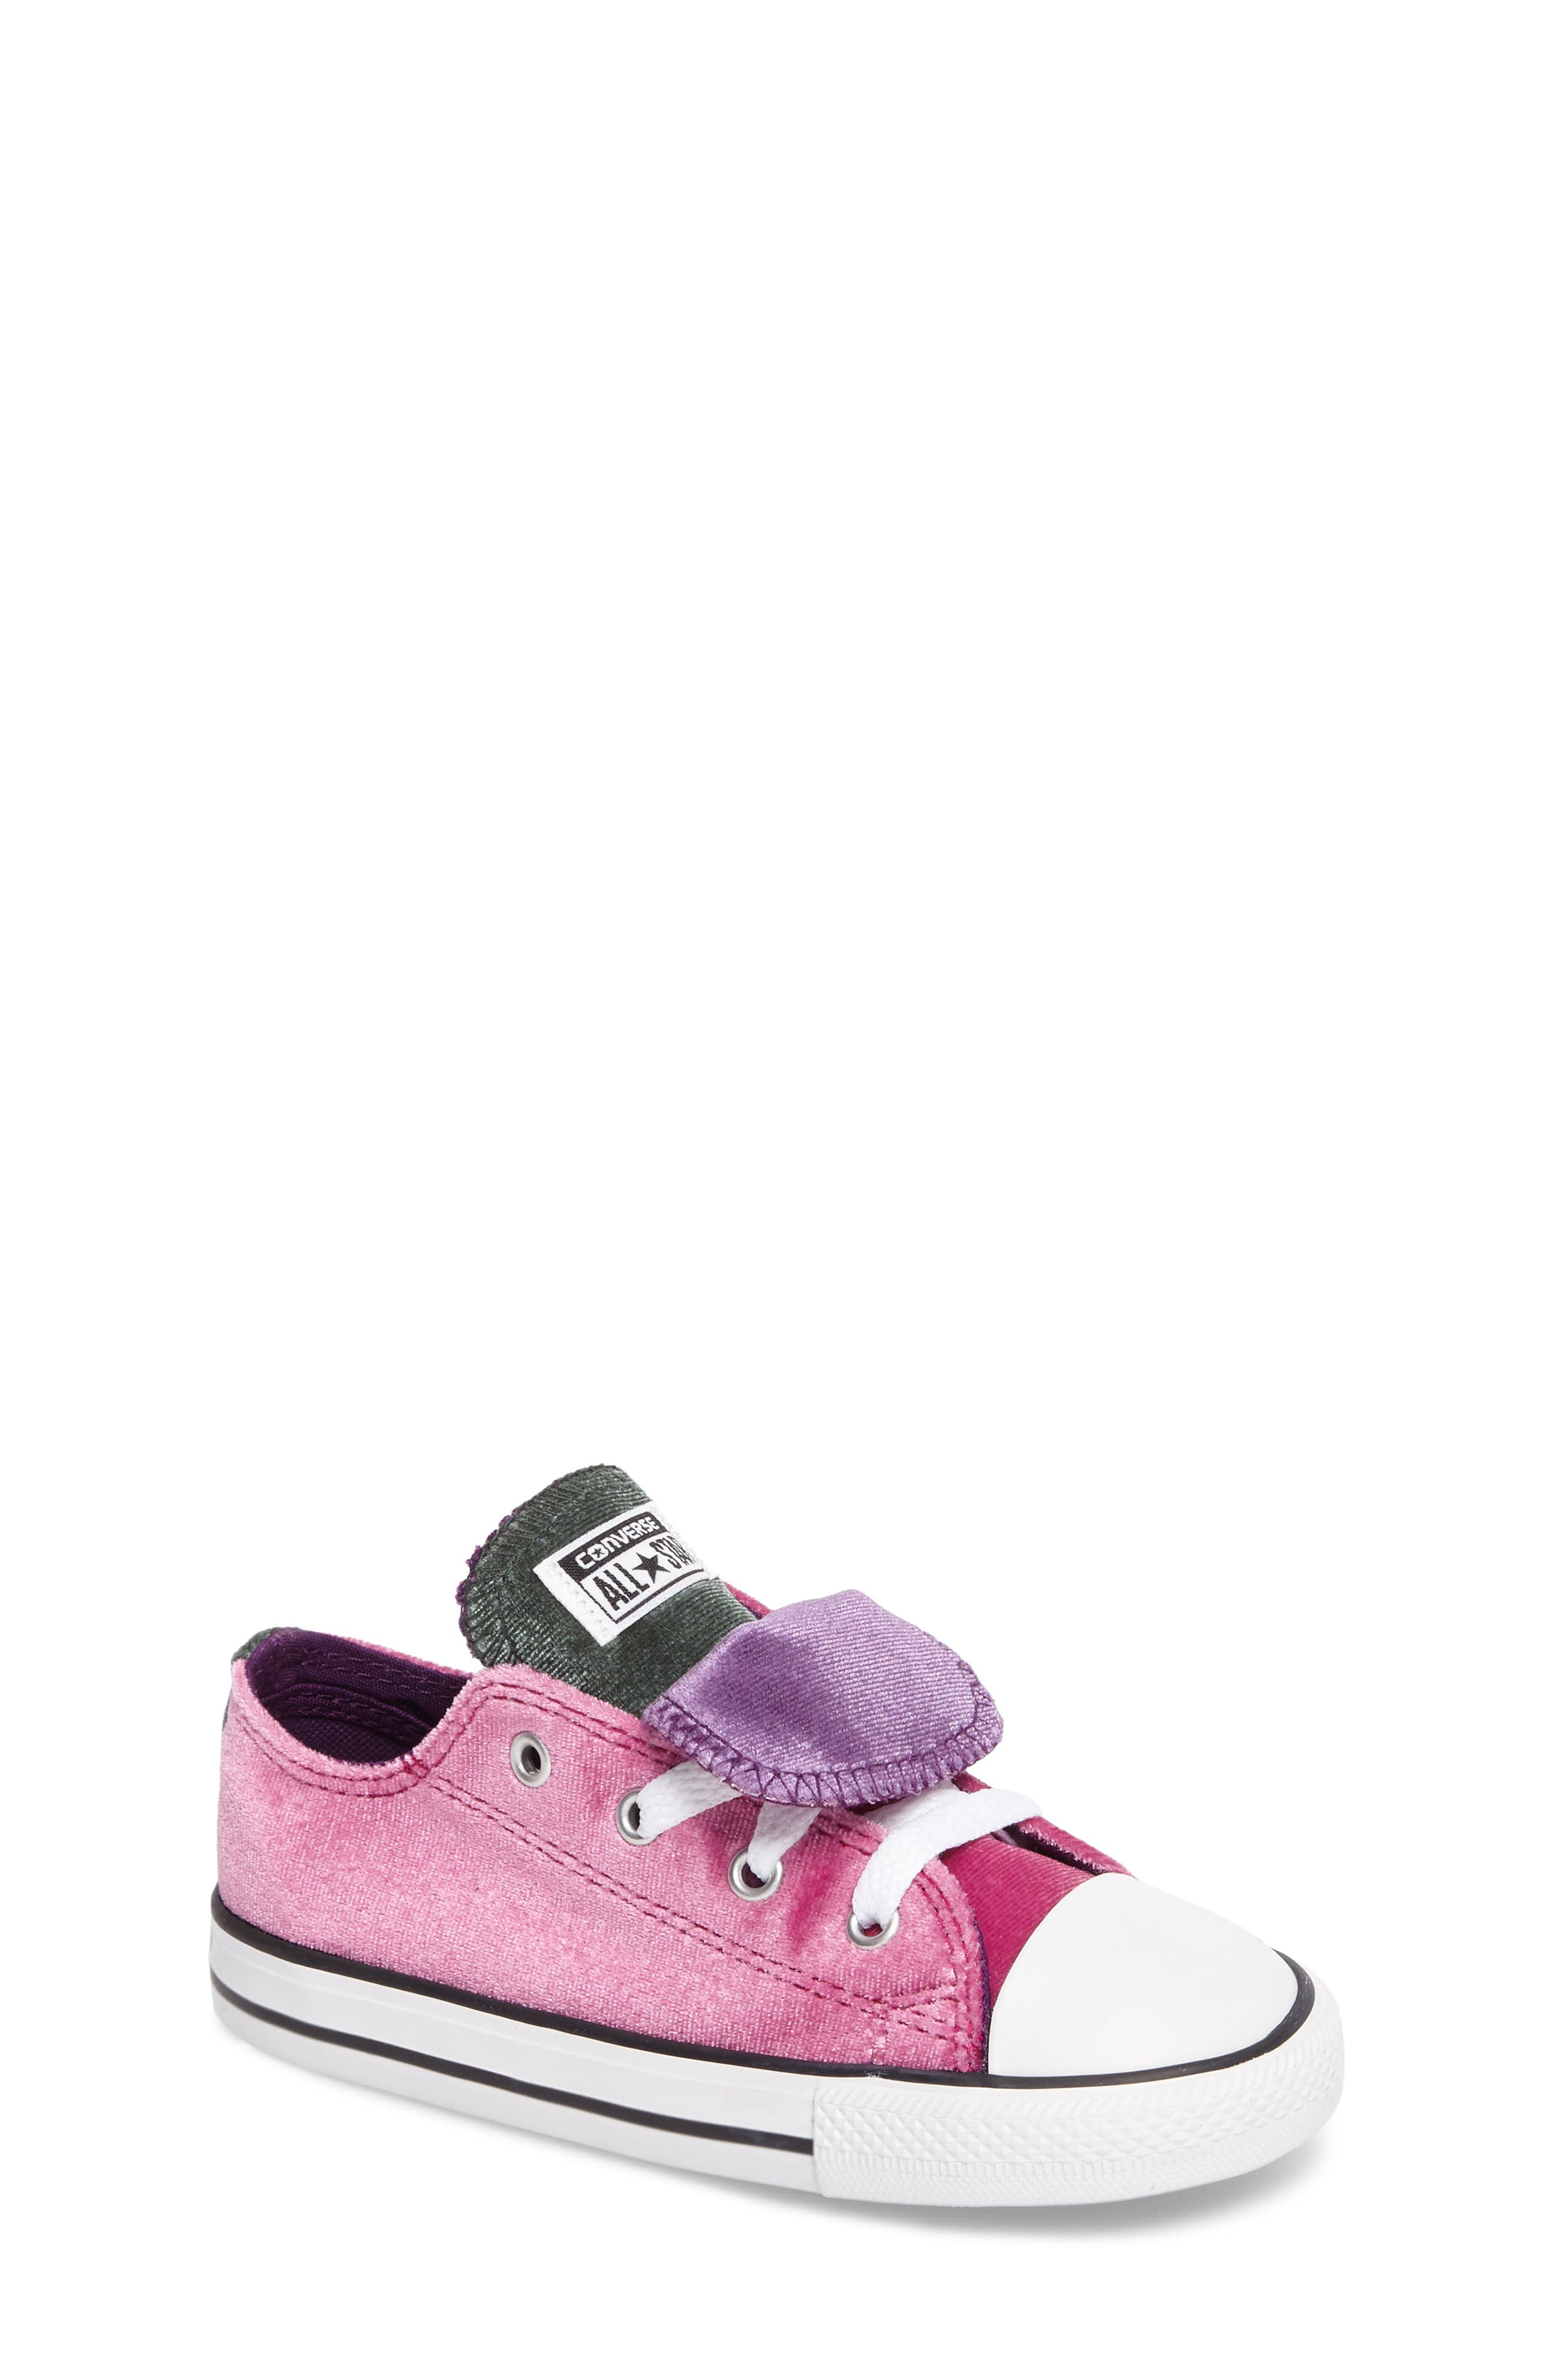 Main Image - Converse All Star® Velvet Double Tongue Sneaker (Baby, Walker & Toddler)